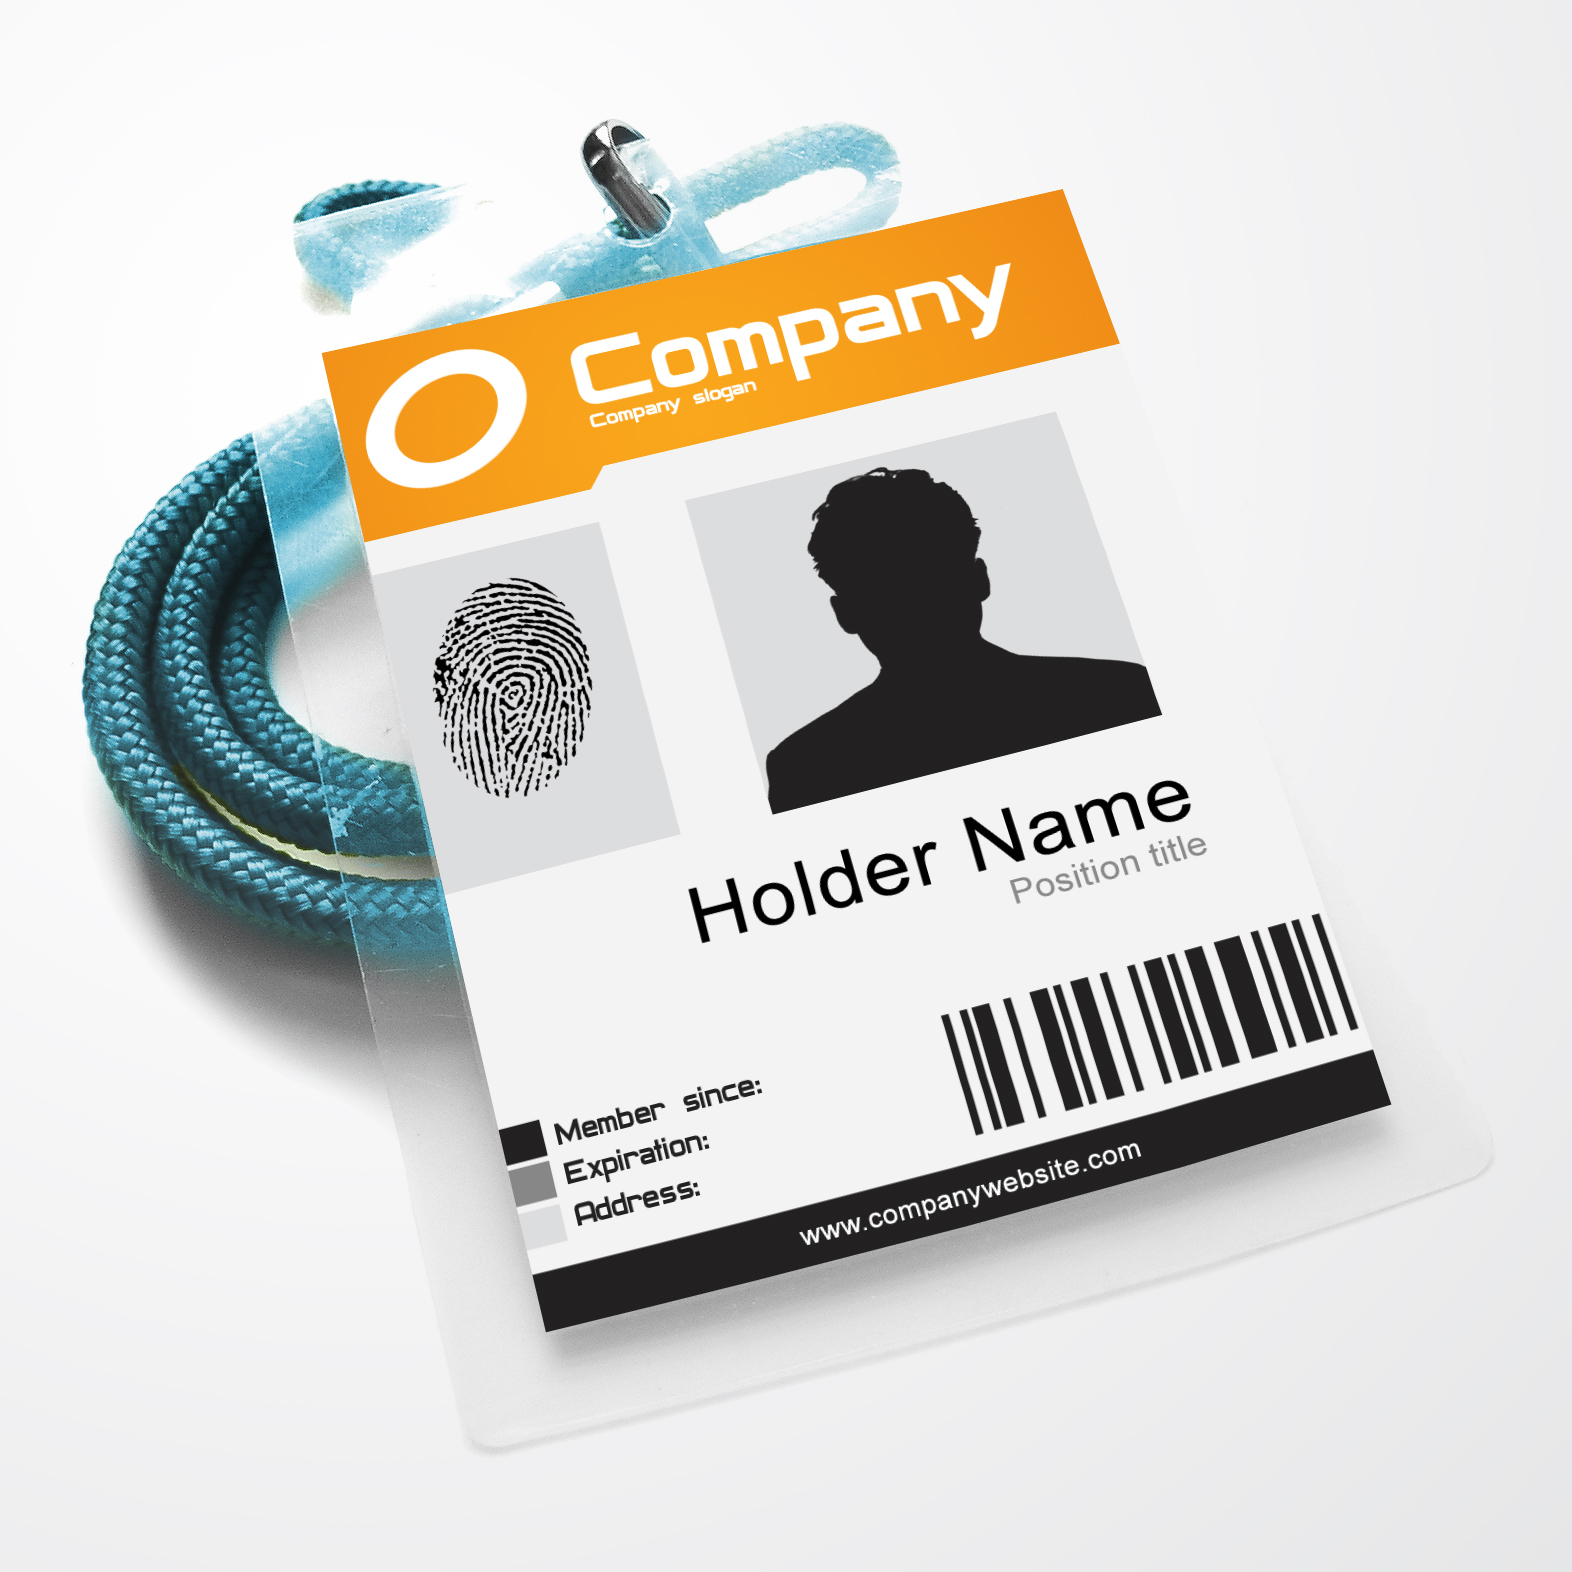 company id template psd - Gecce.tackletarts.co